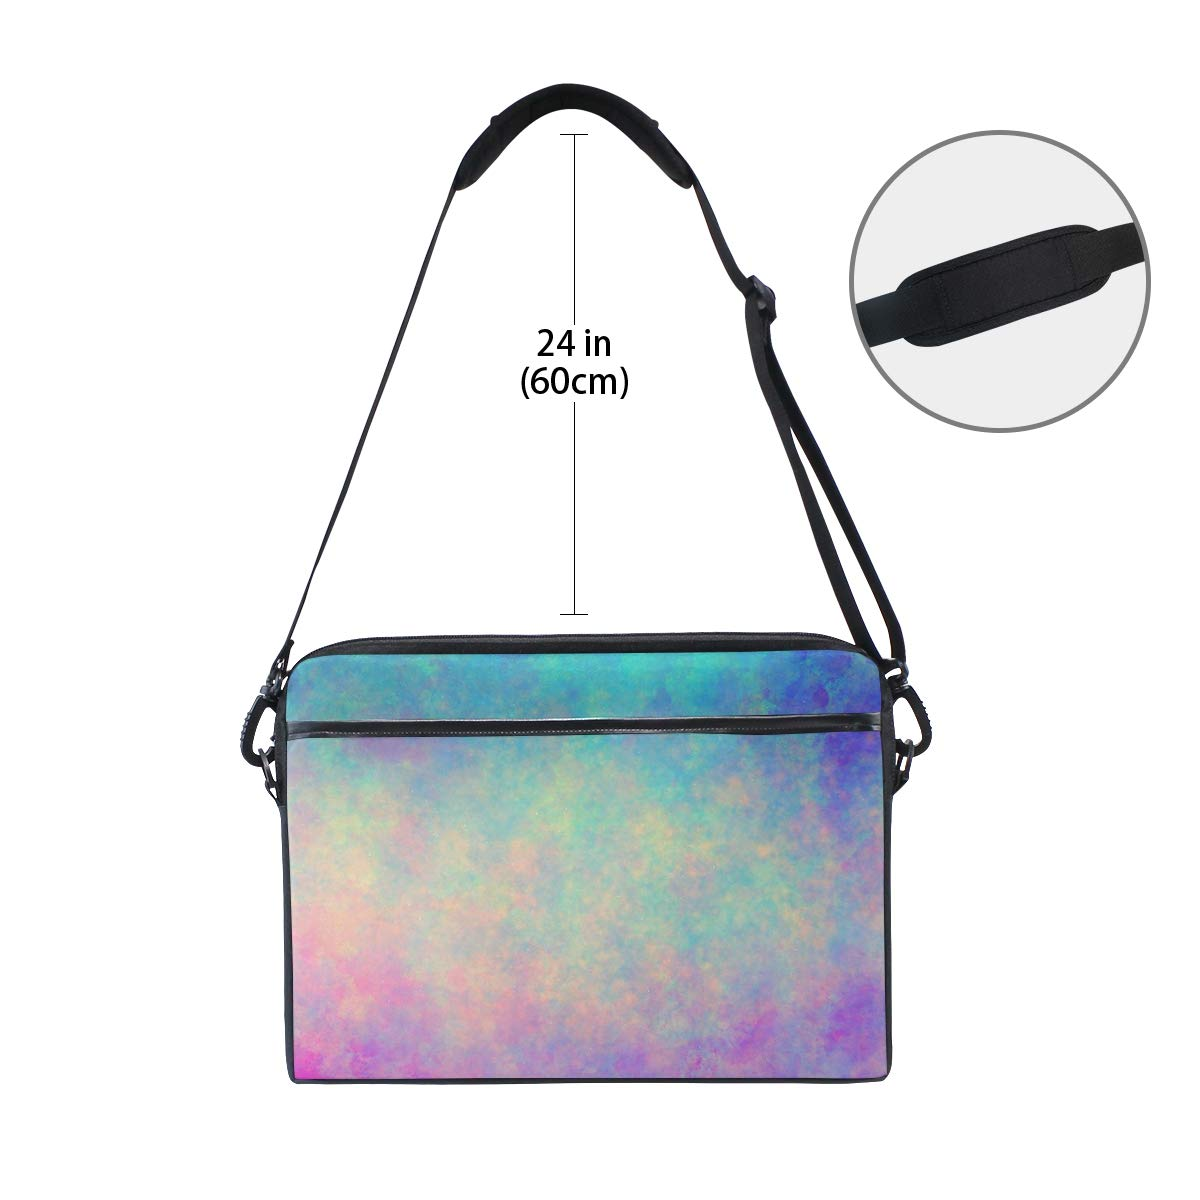 Briefcases Pigmentmens and Womens Computer Bags Handbags Suitable for 15 Inch Computers Shoulder Bags